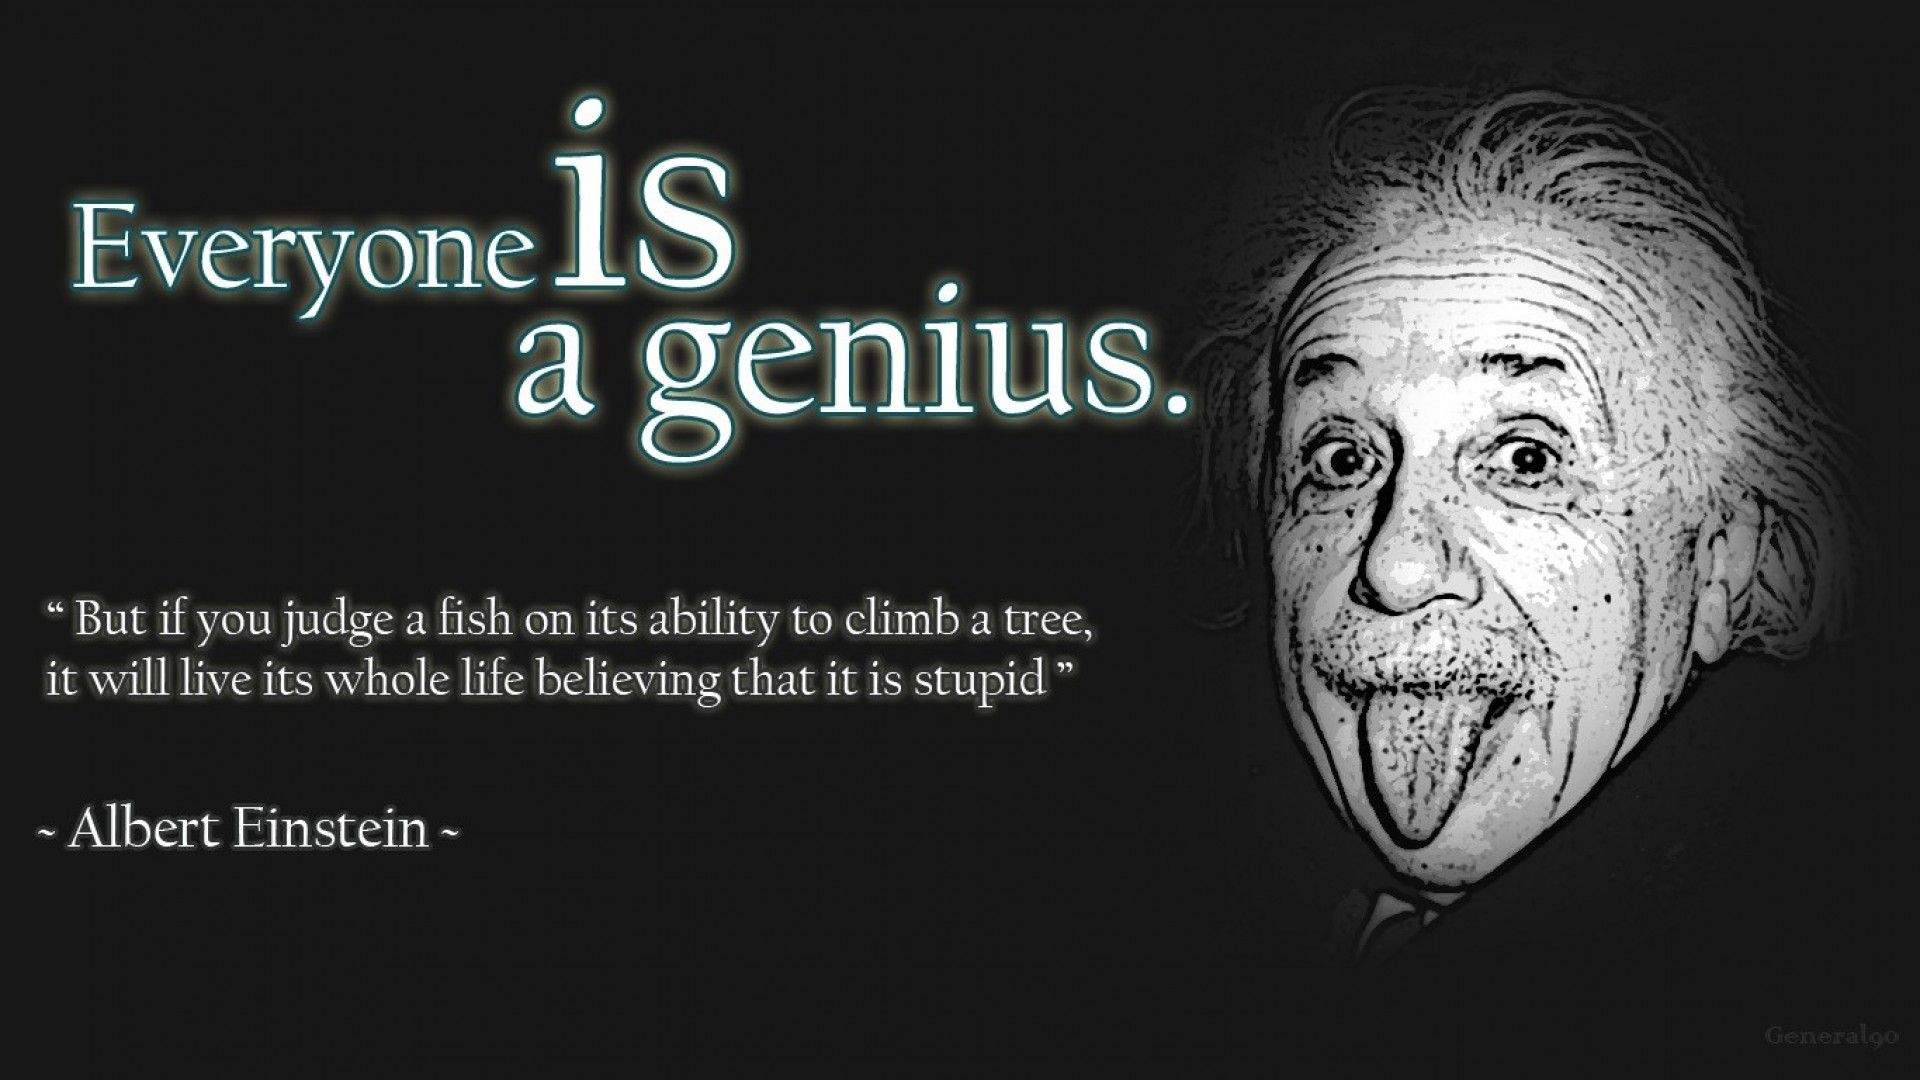 albert einstein quote hd projects to try albert einstein quote hd